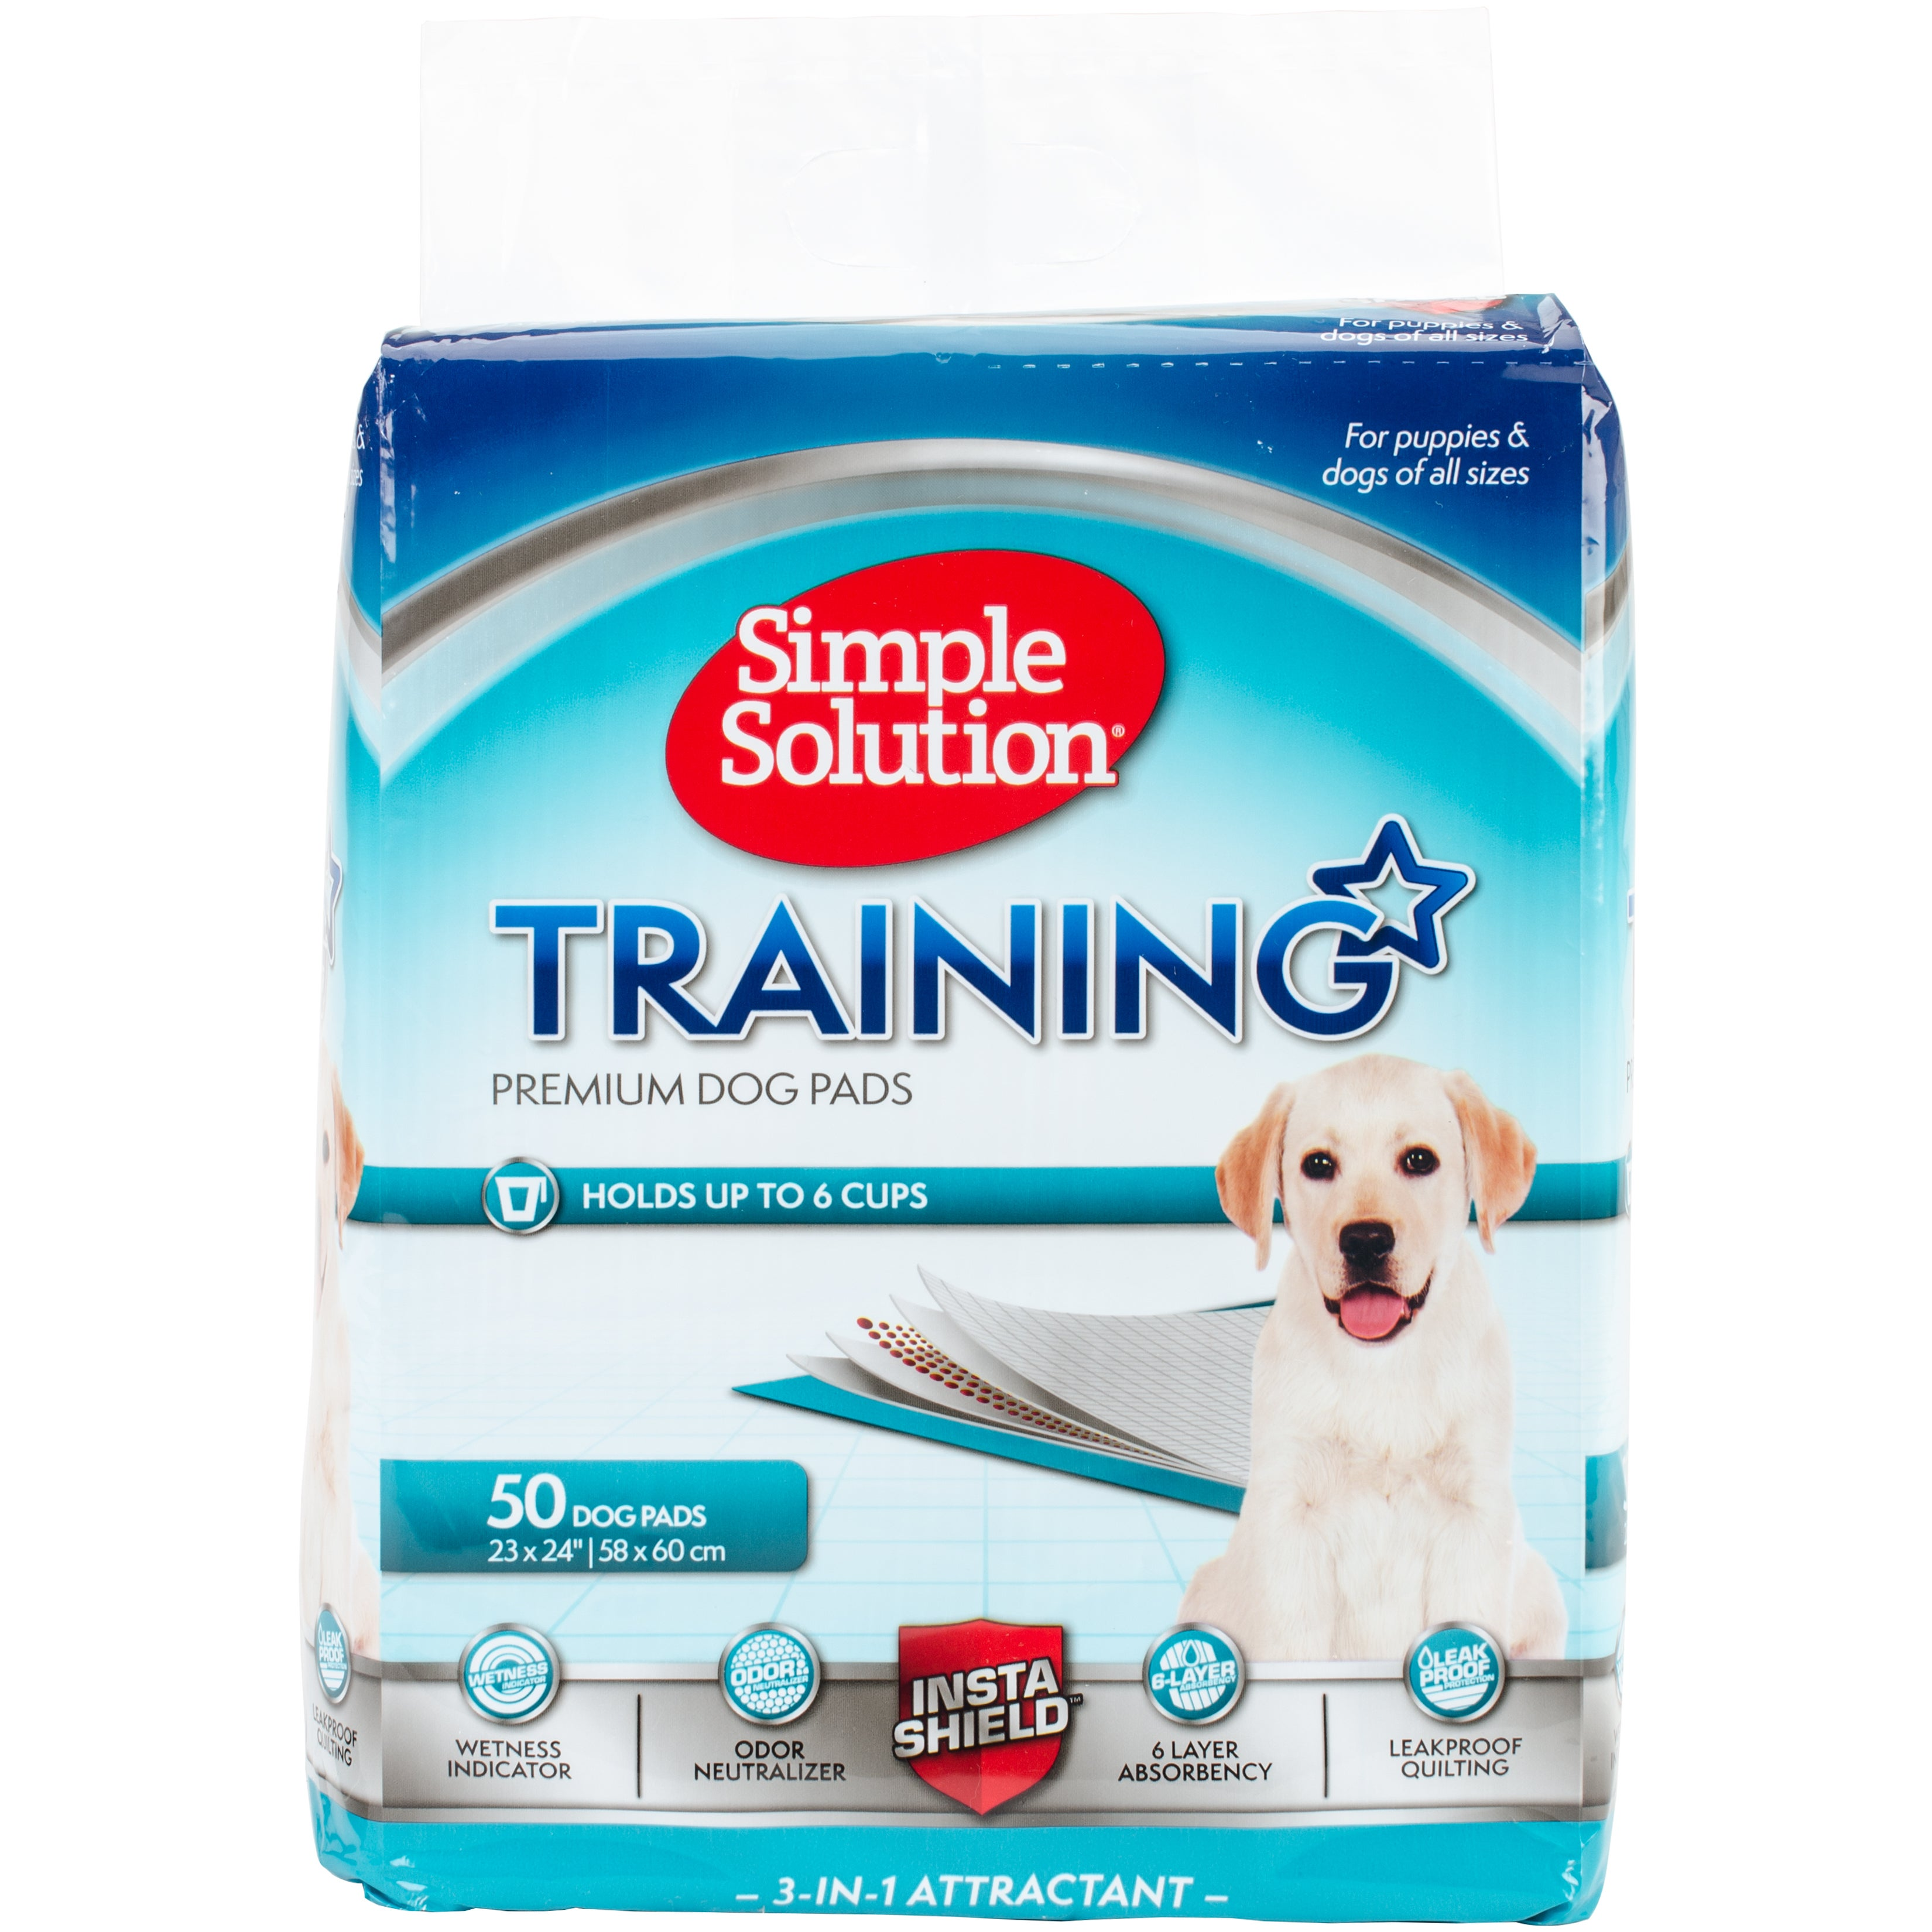 Simple Solution Dog Training Pads (50 count), Grey